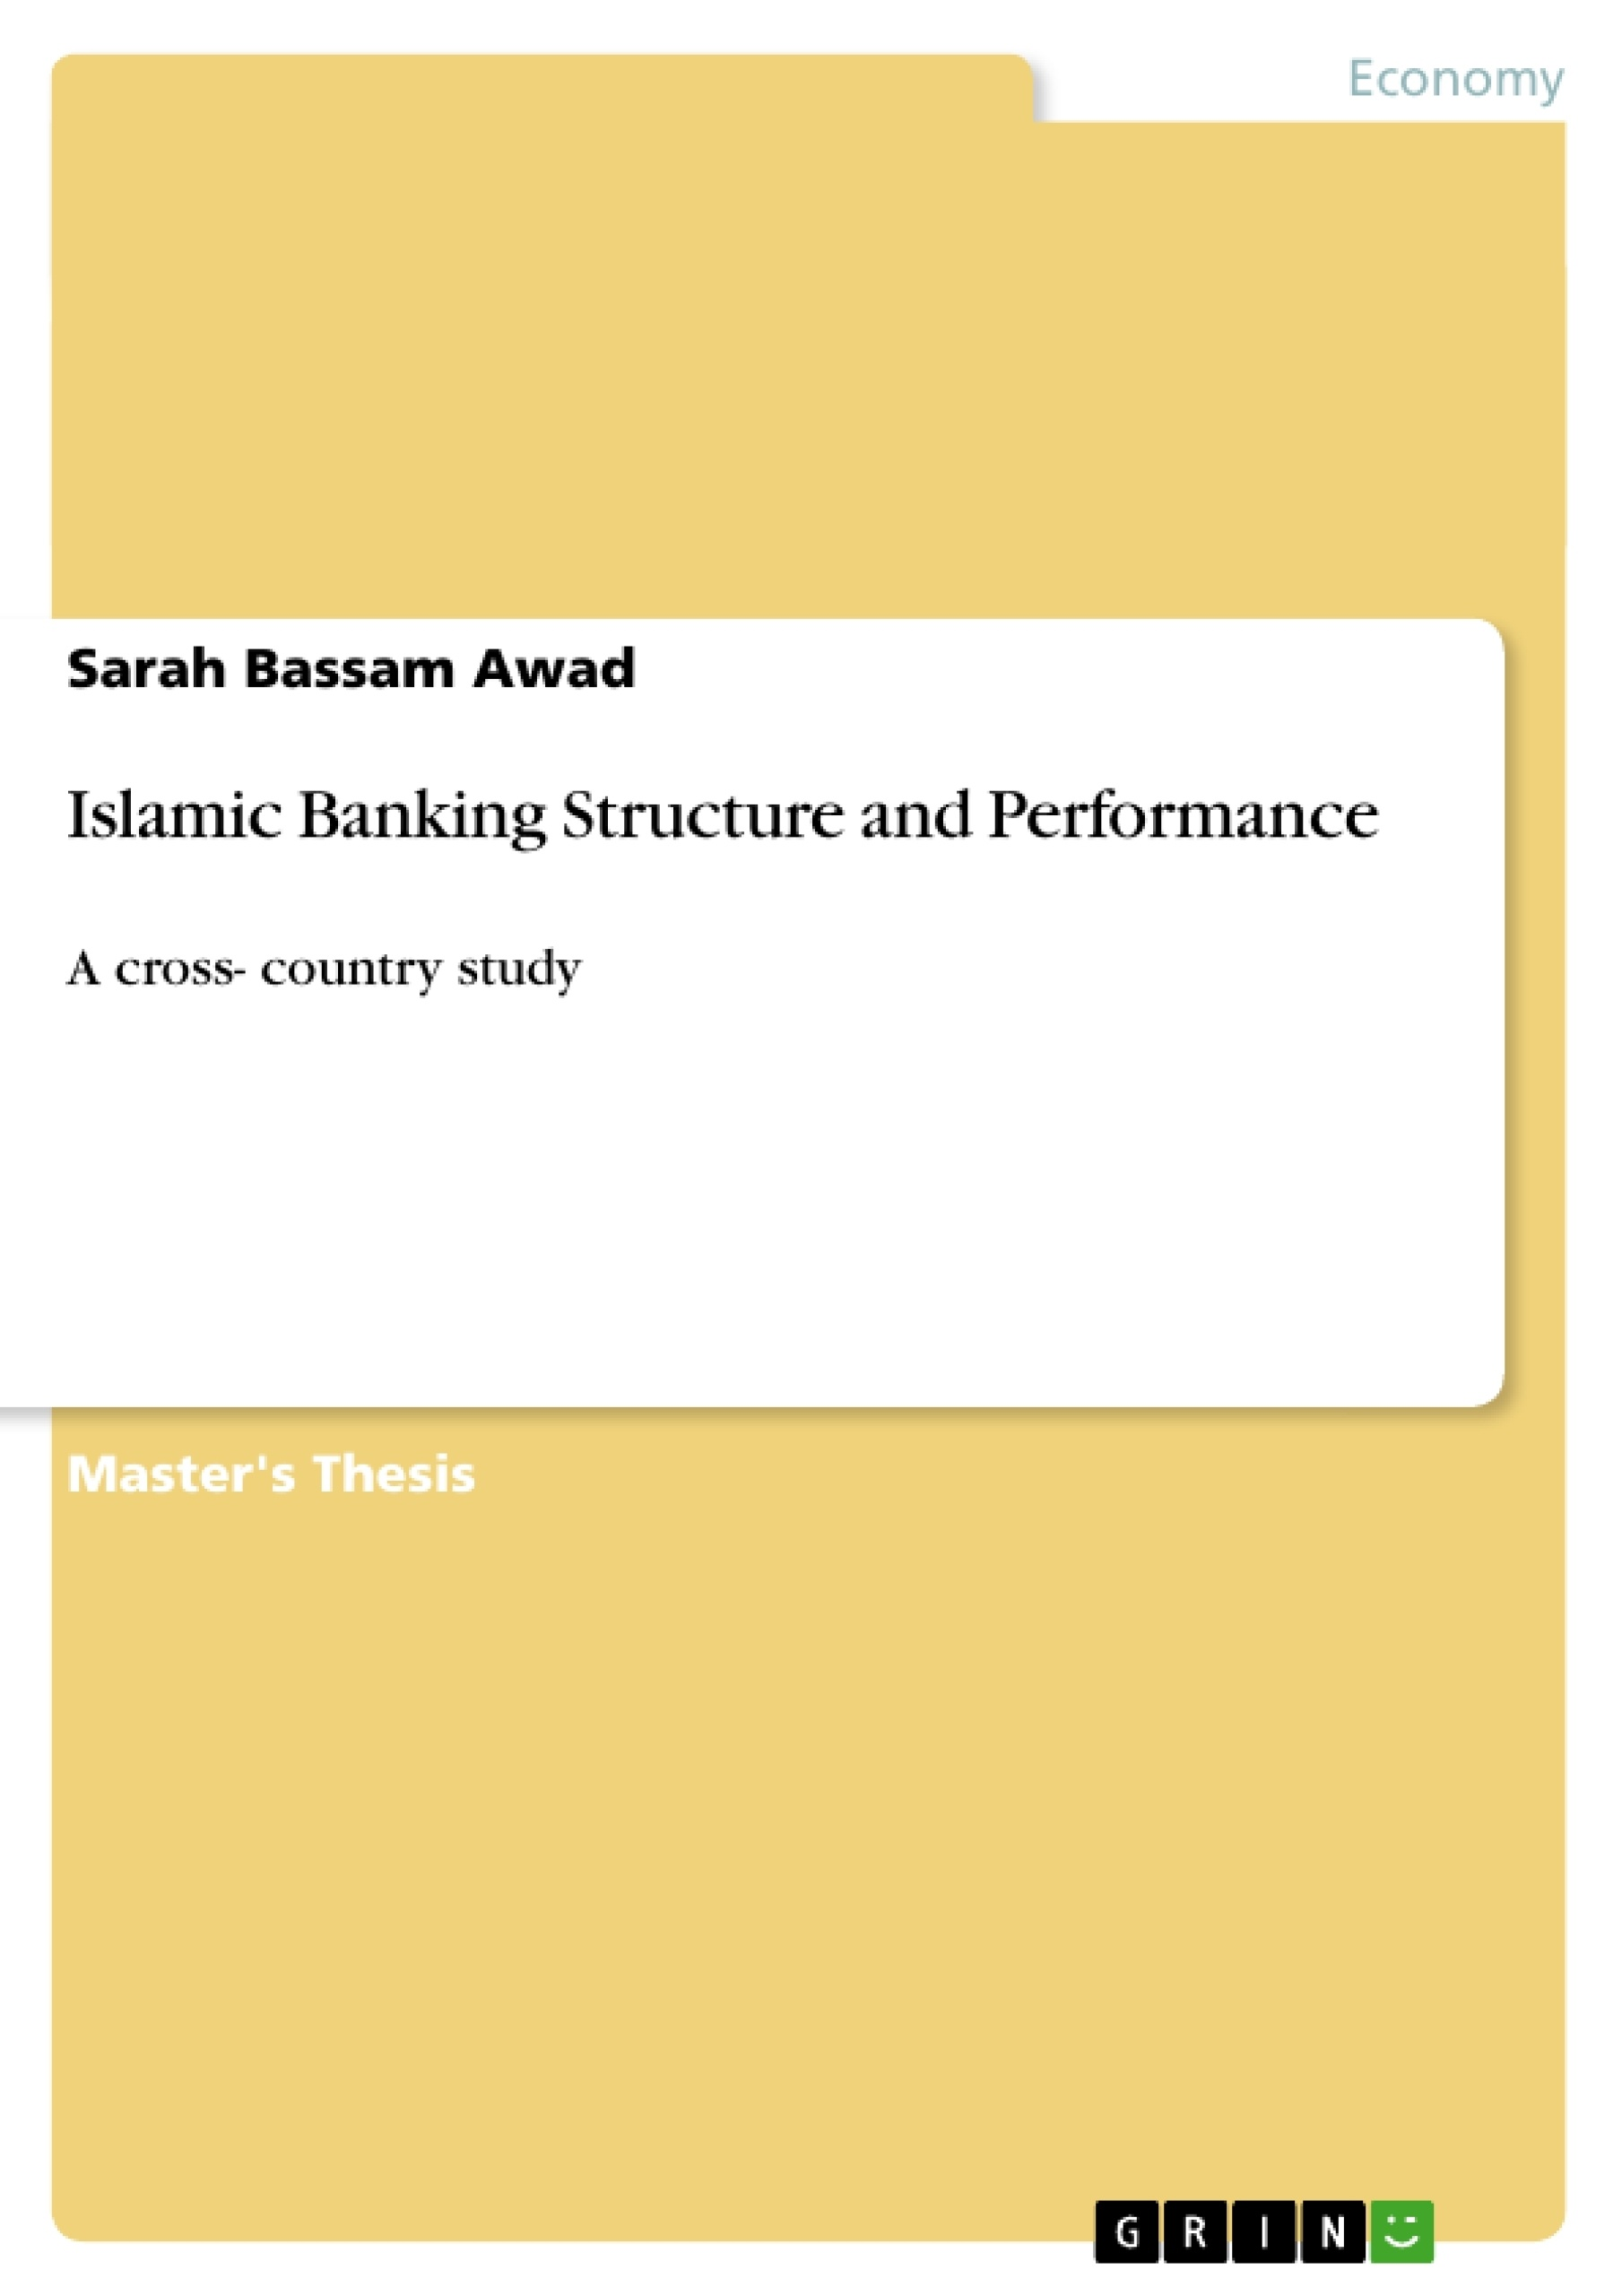 essay on banking islamic banking structure and performance publish  islamic banking structure and performance publish your master s islamic banking structure and performance publish your